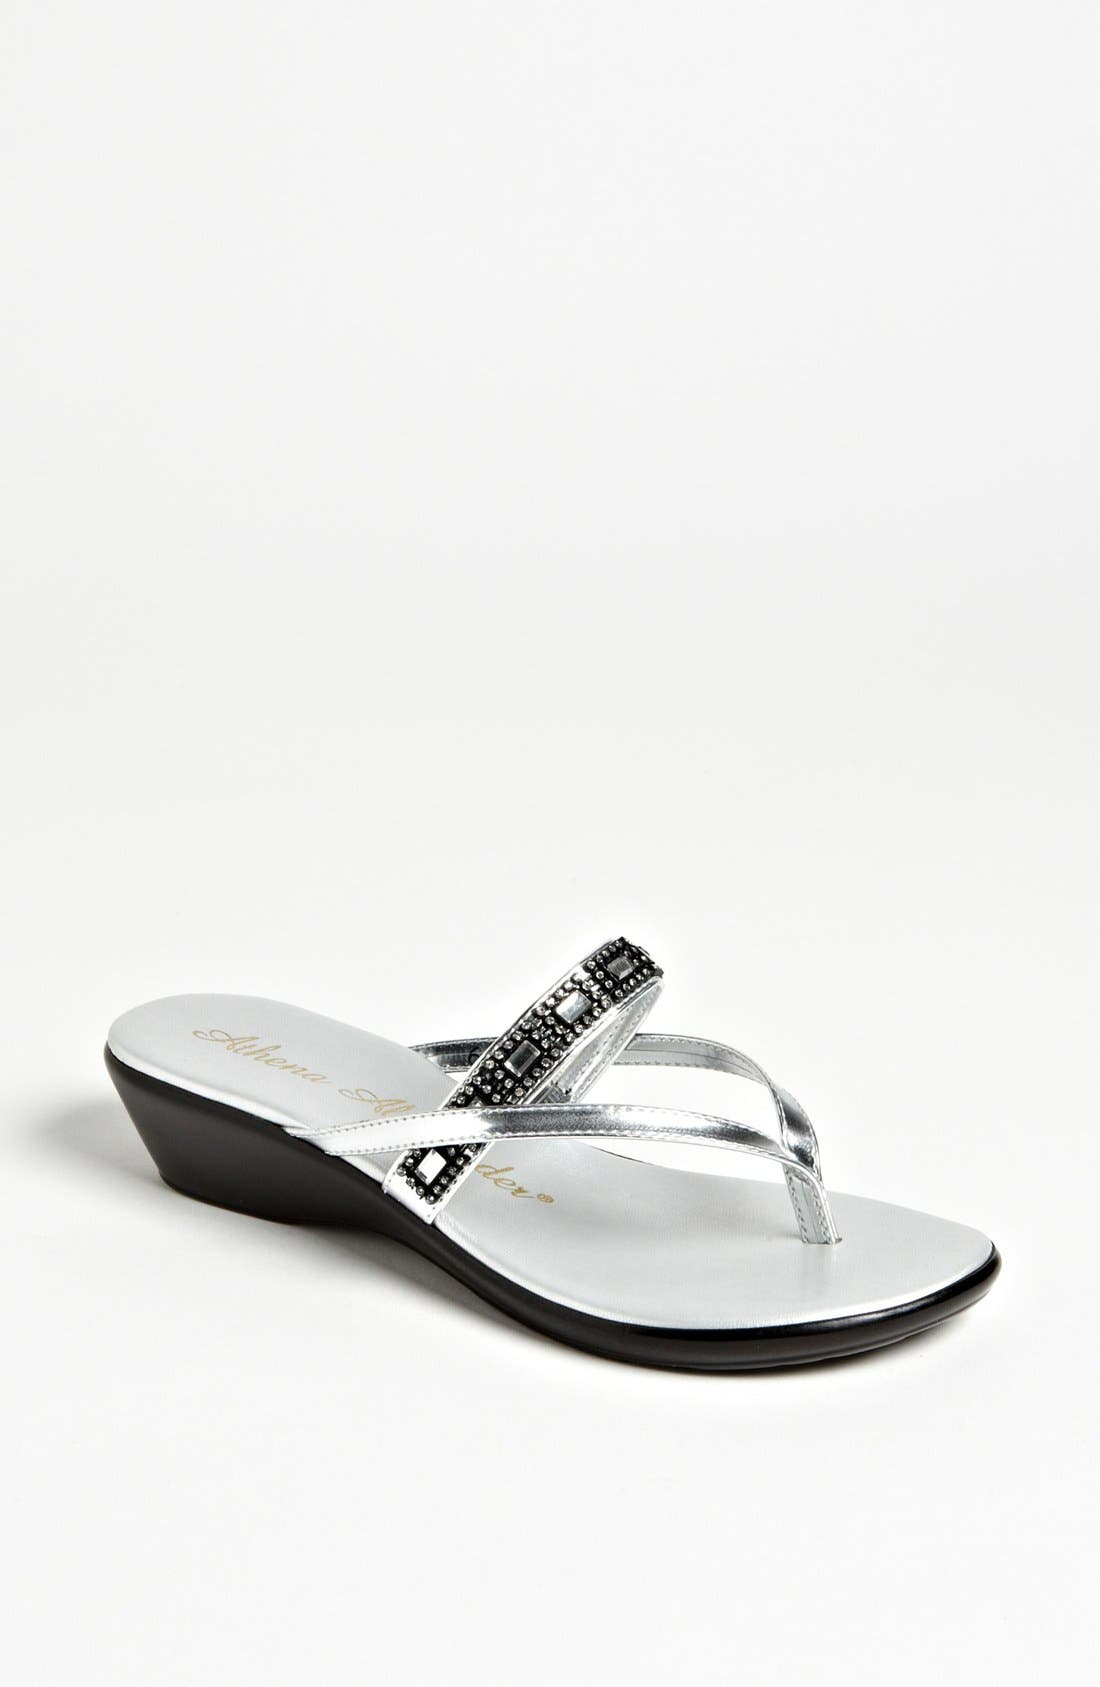 Alternate Image 1 Selected - Athena Alexander 'Trudi' Sandal